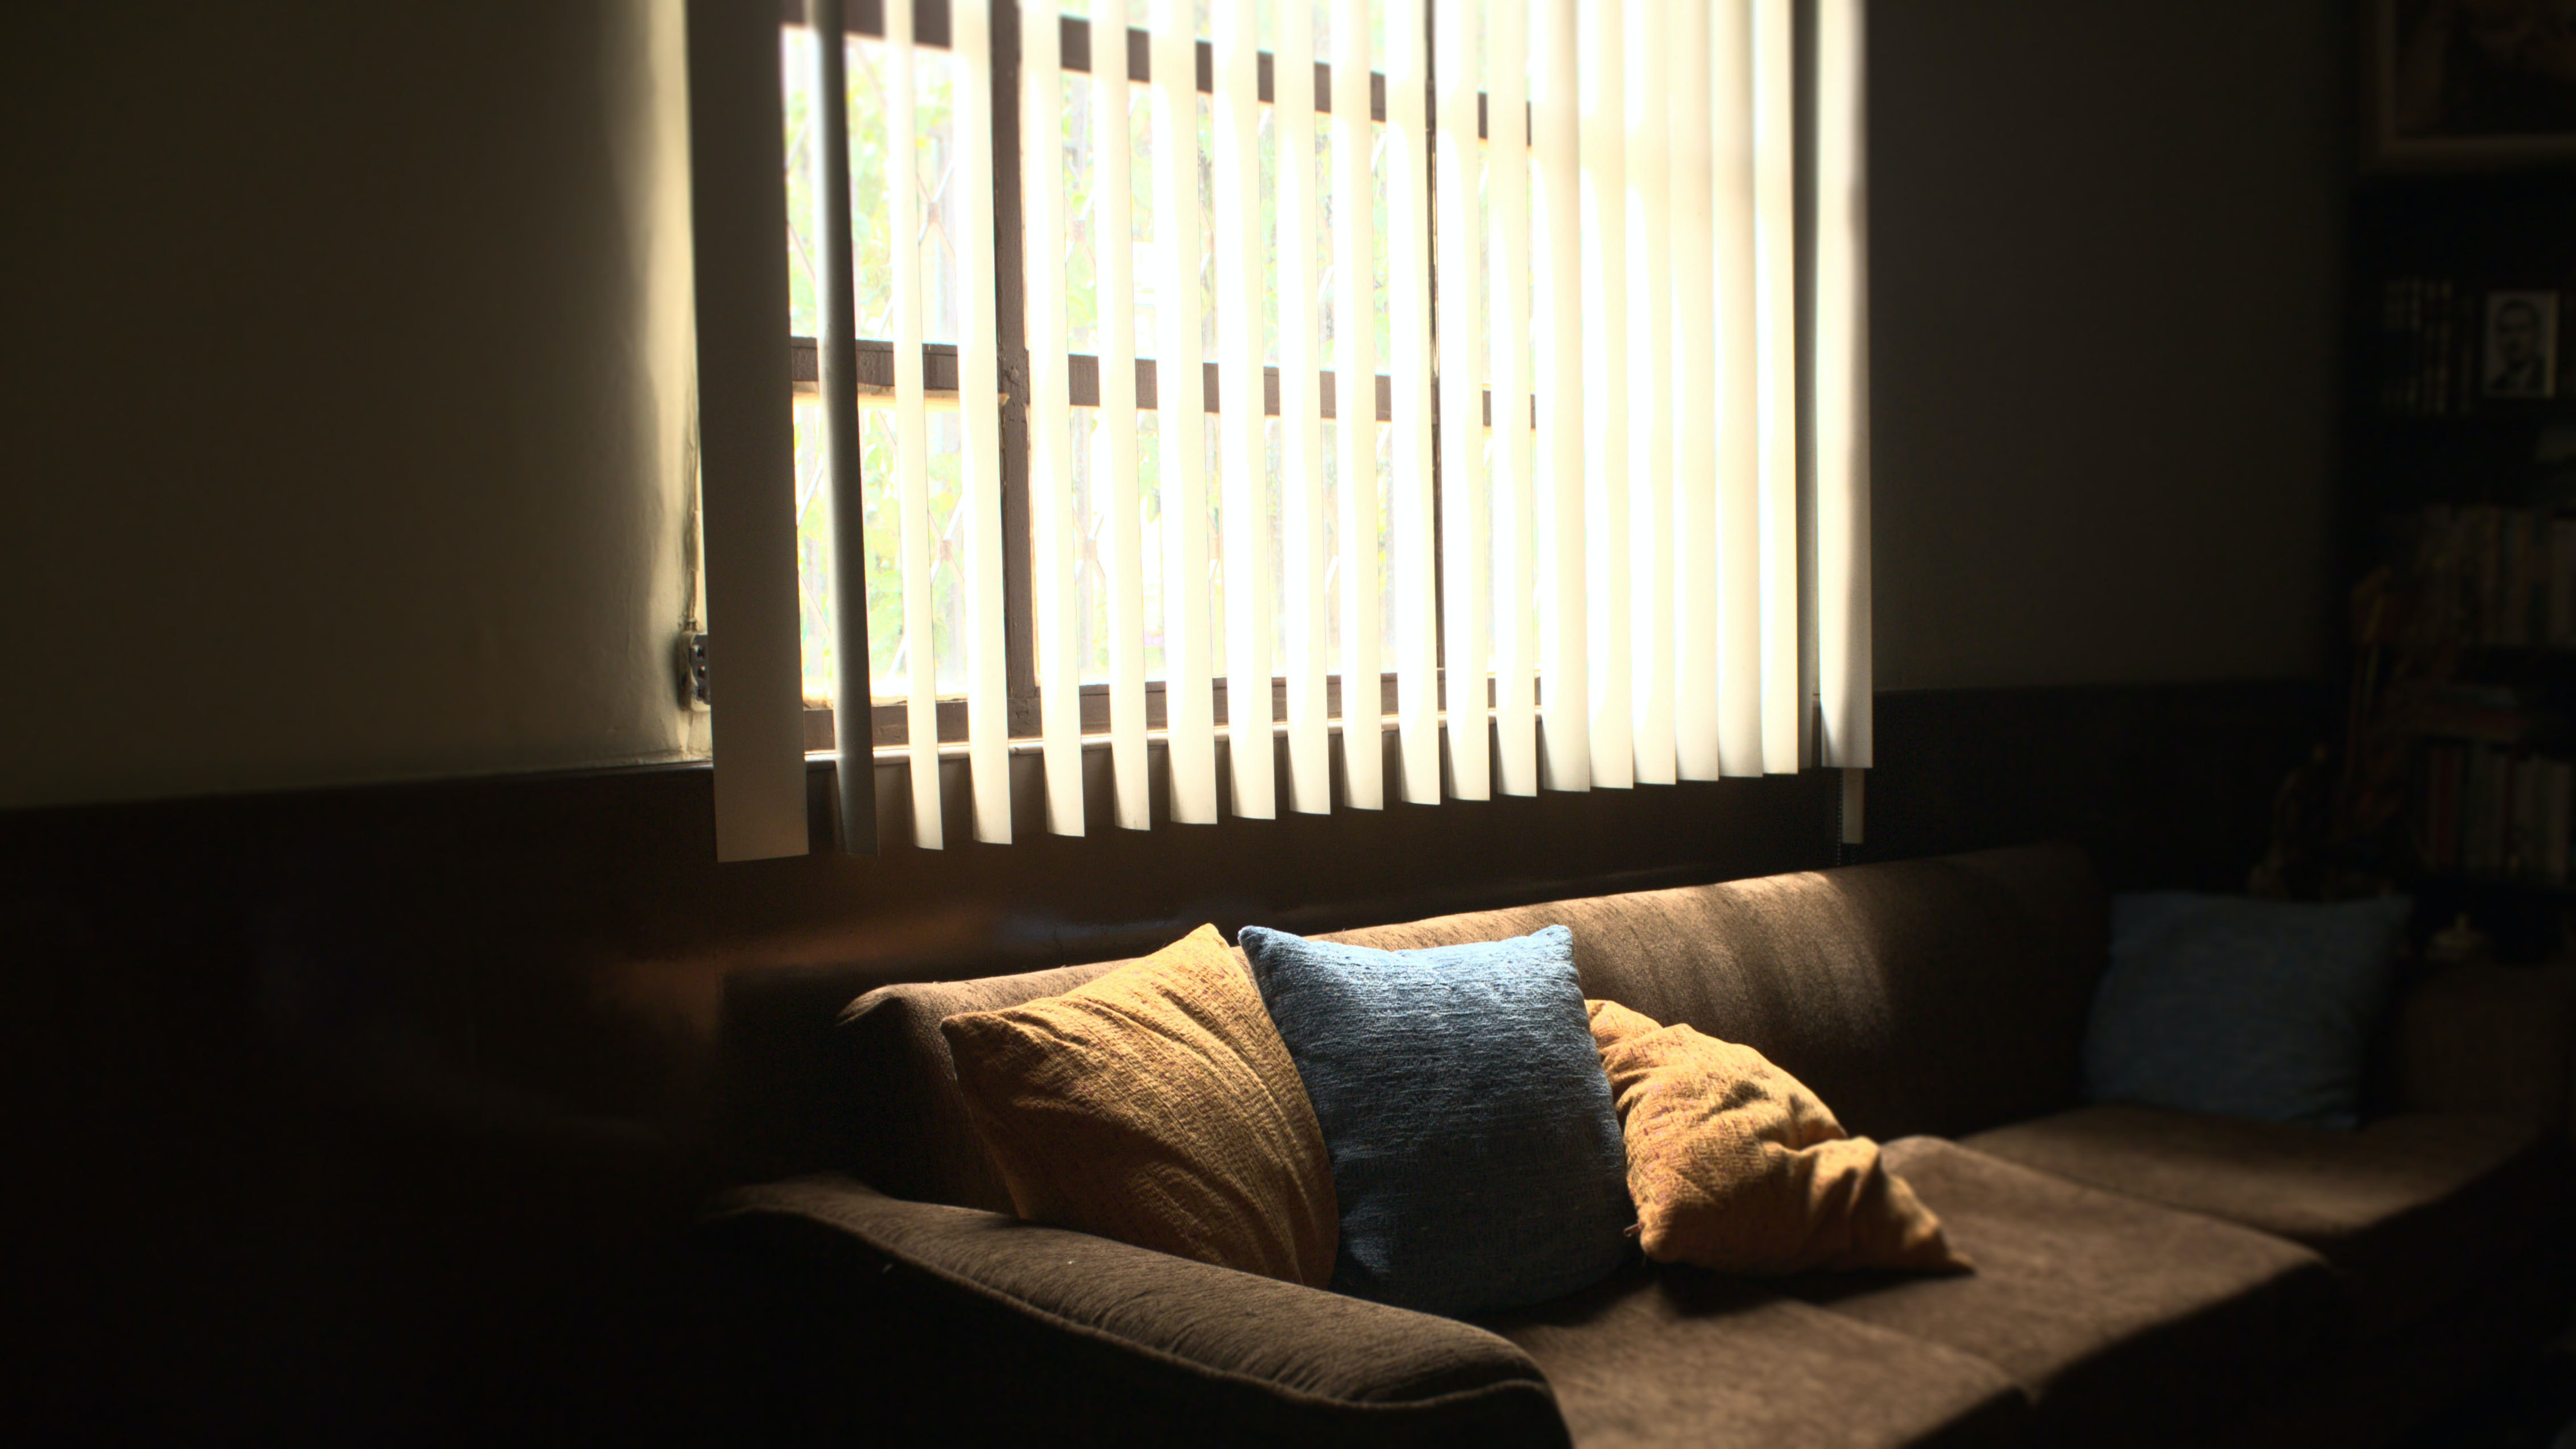 brown fabric 3-seat sofa in front of white window blinds cover window